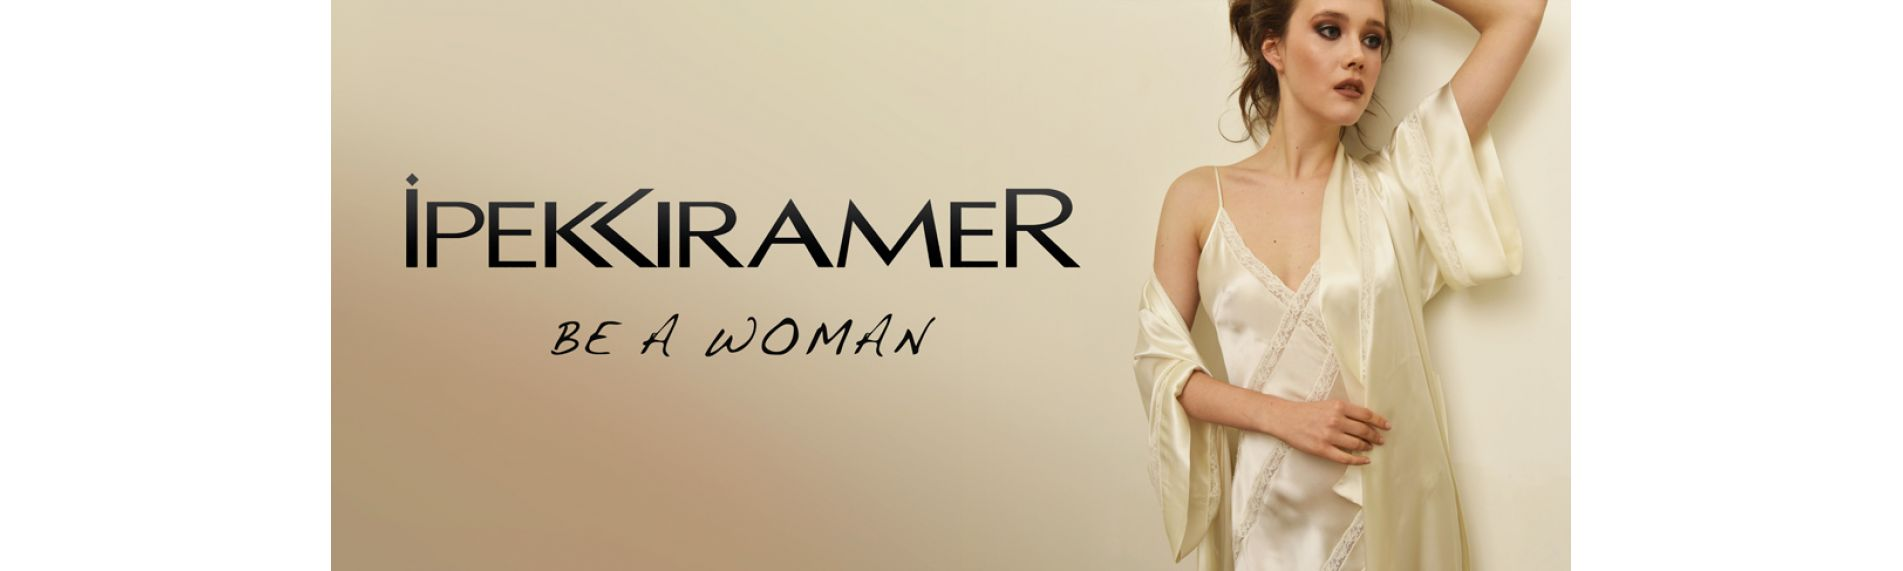 ipek kiramer lingerie collection